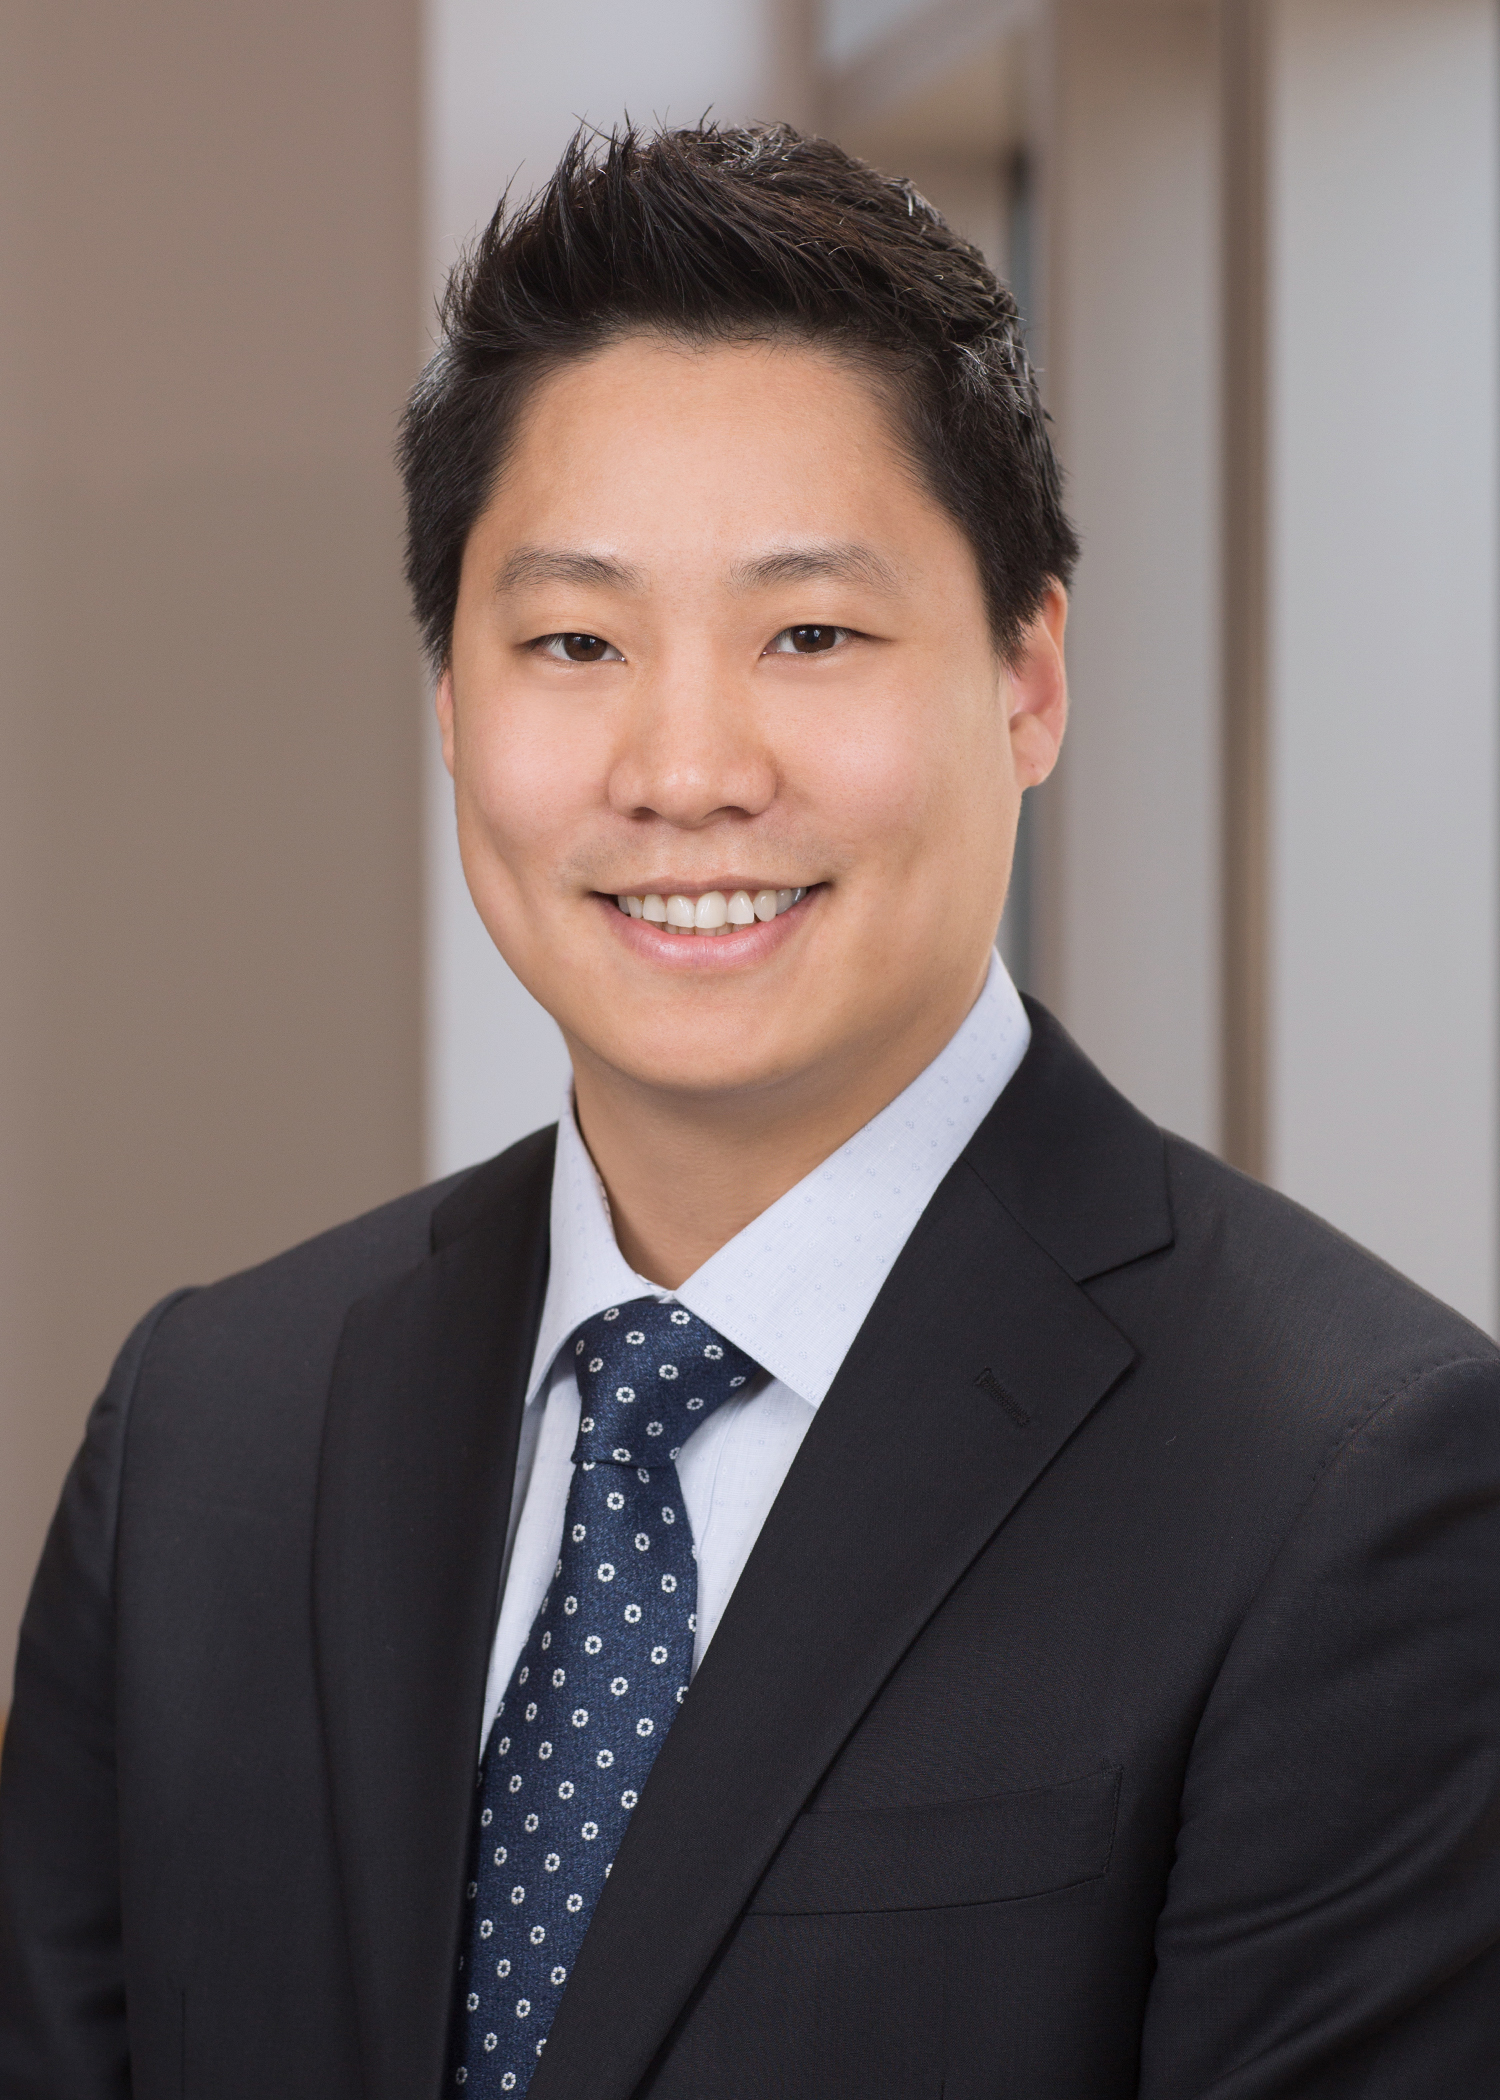 David Kim, PhD, to serve as Program Director of the CEA Registry